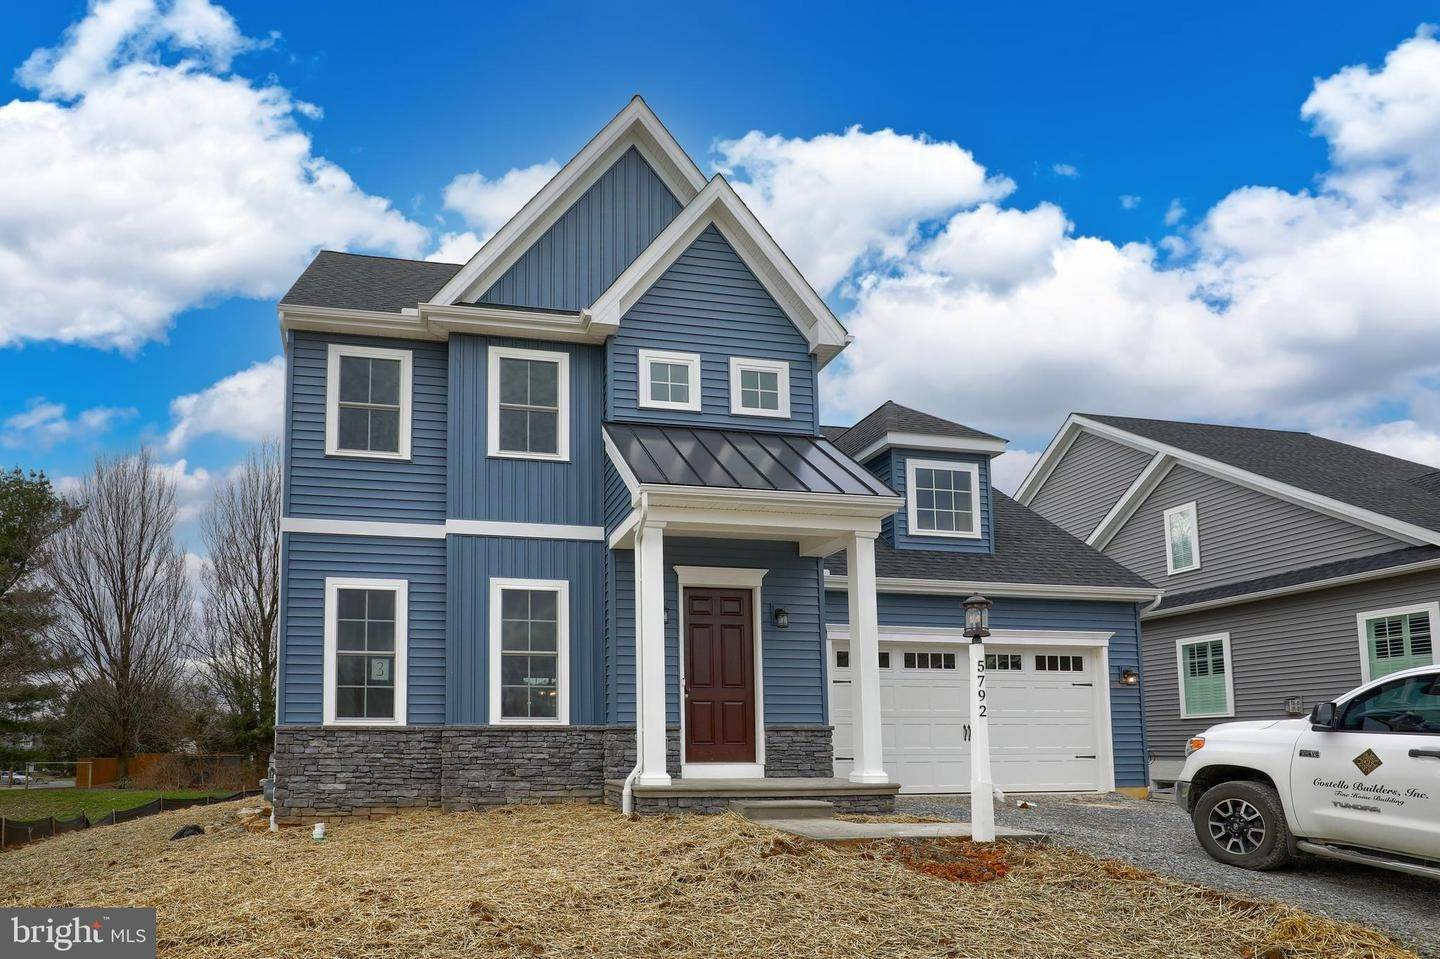 Residential for Sale at LOT # 2 WILD LILAC DRIVE East Petersburg, Pennsylvania 17520 United States